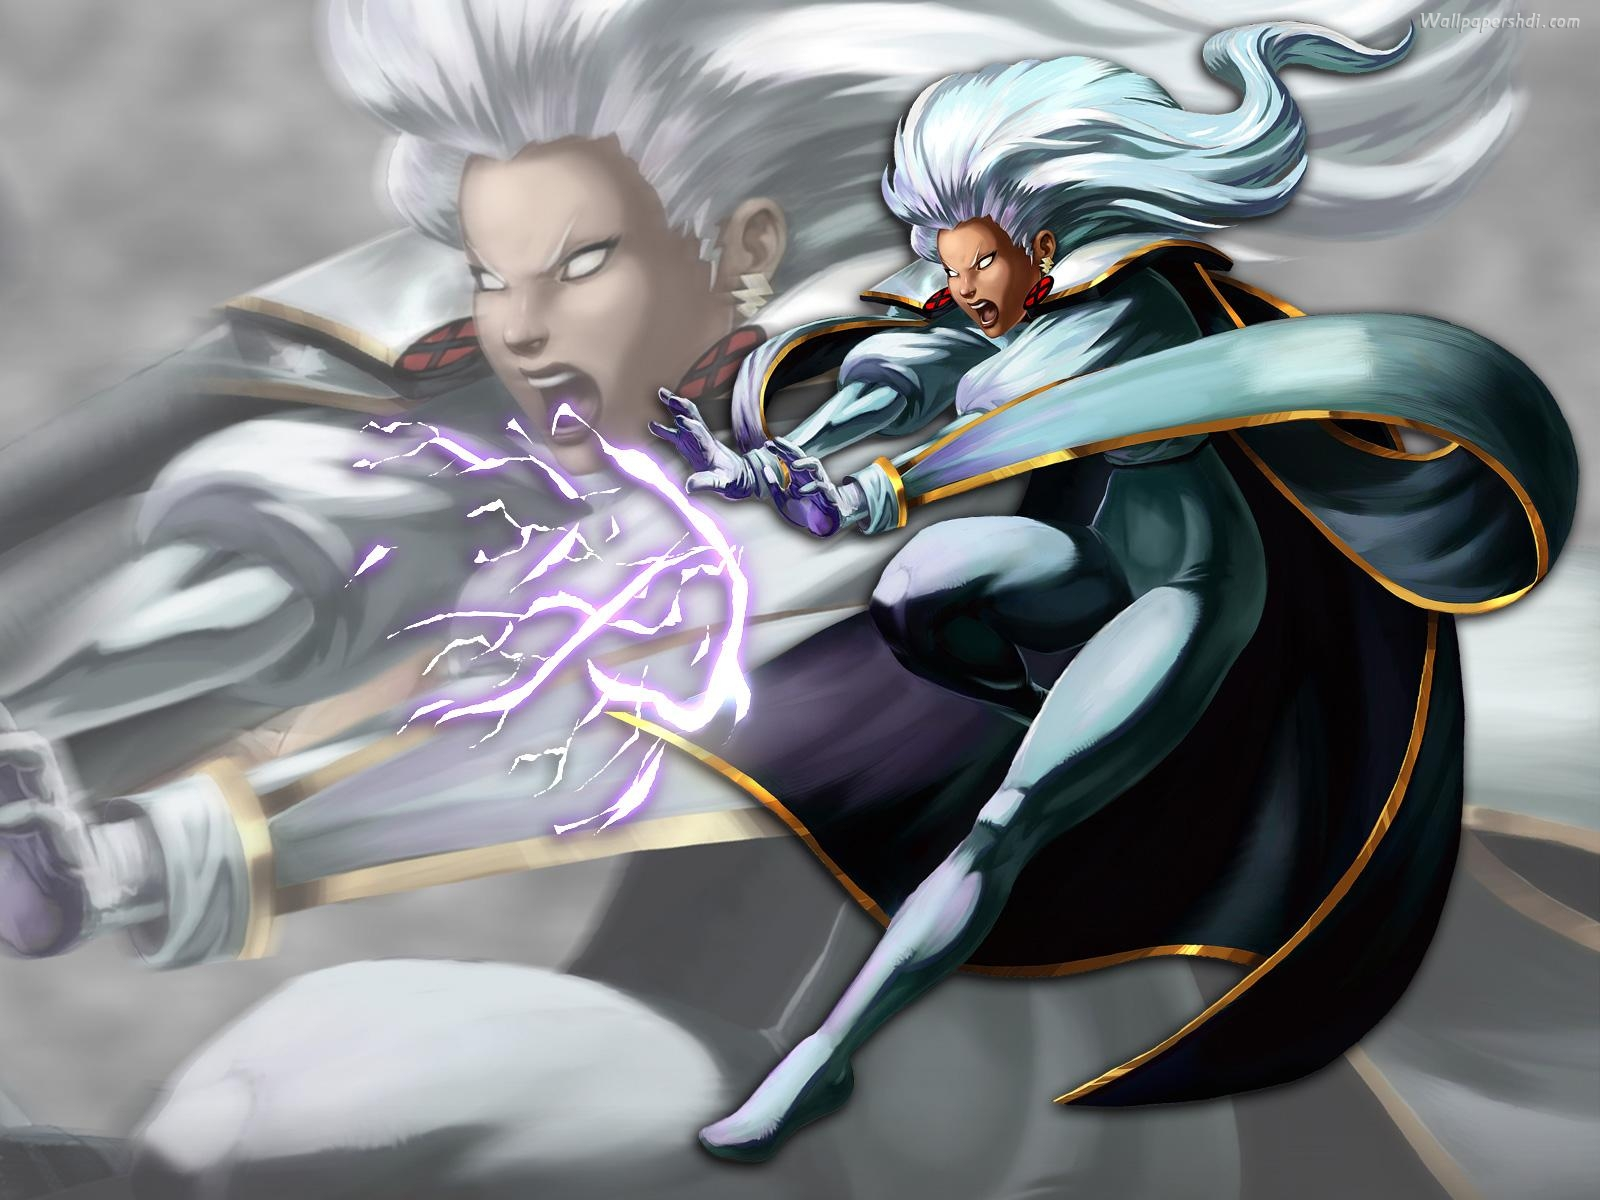 ororo storm wallpaper - photo #3